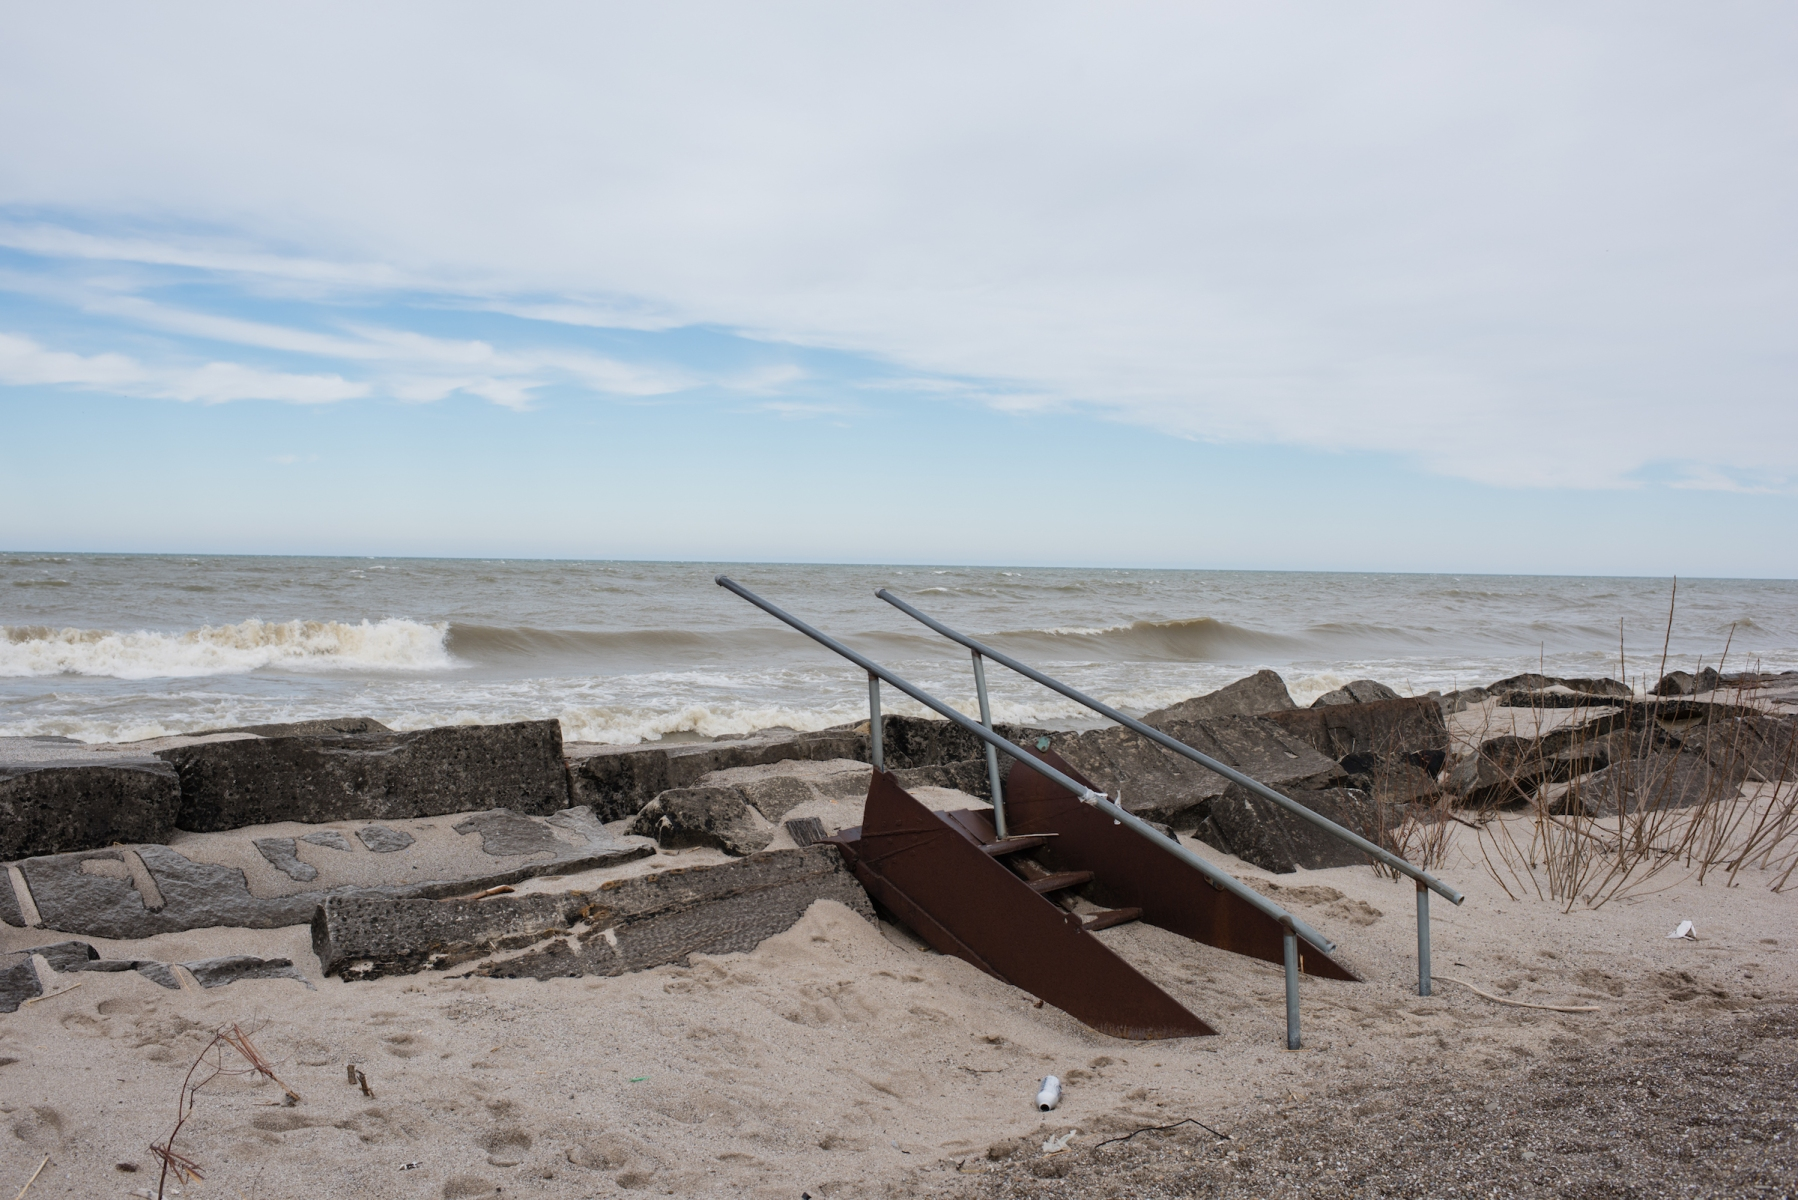 A view of Lake Erie the parking lot of Walnut Beach in Ashtabula, Ohio on Sunday, February 25th, 2018. Pieces of the oldest shipwreck in Lake Erie may have recently been recovered. (Dustin Franz/For The Washingotn Post)